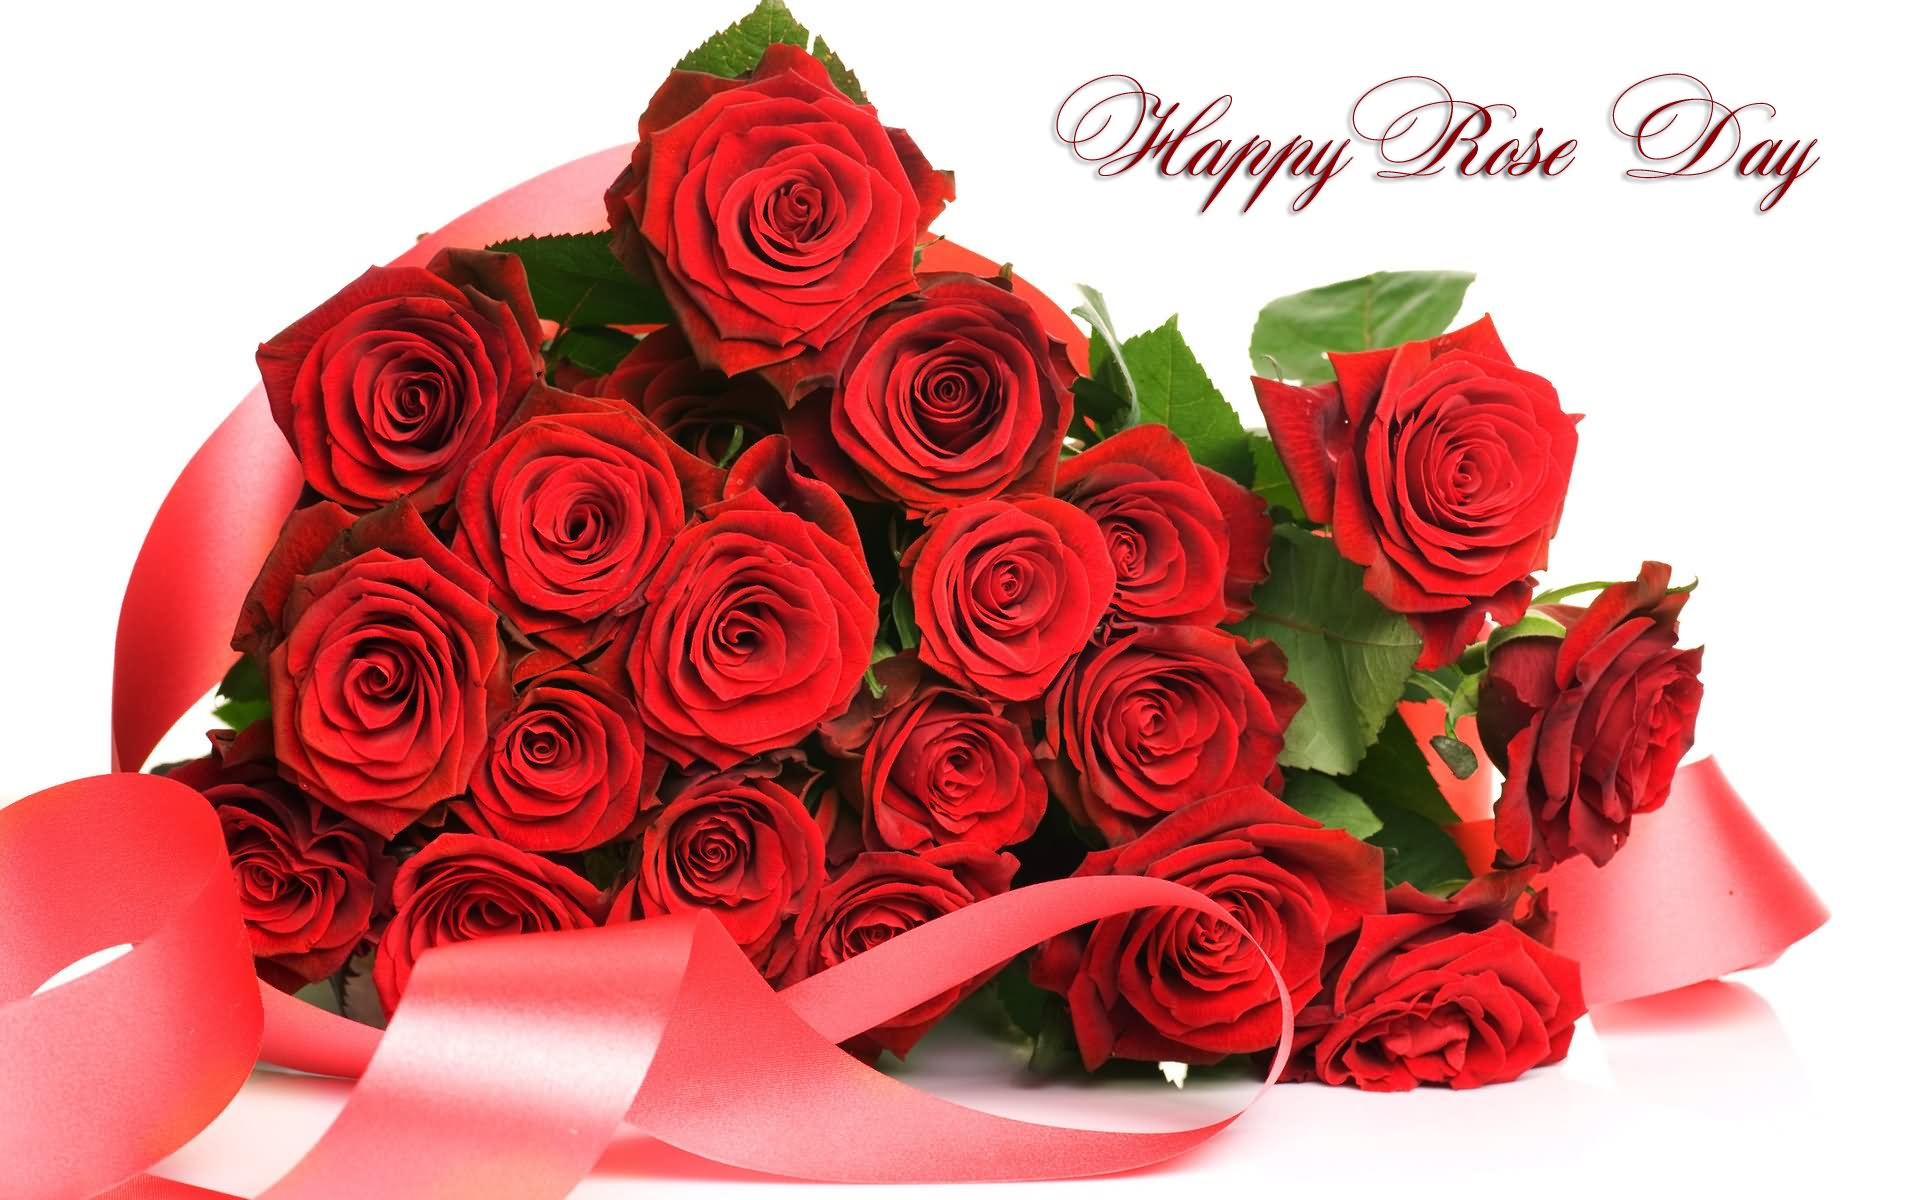 4-Rose Day Wishes